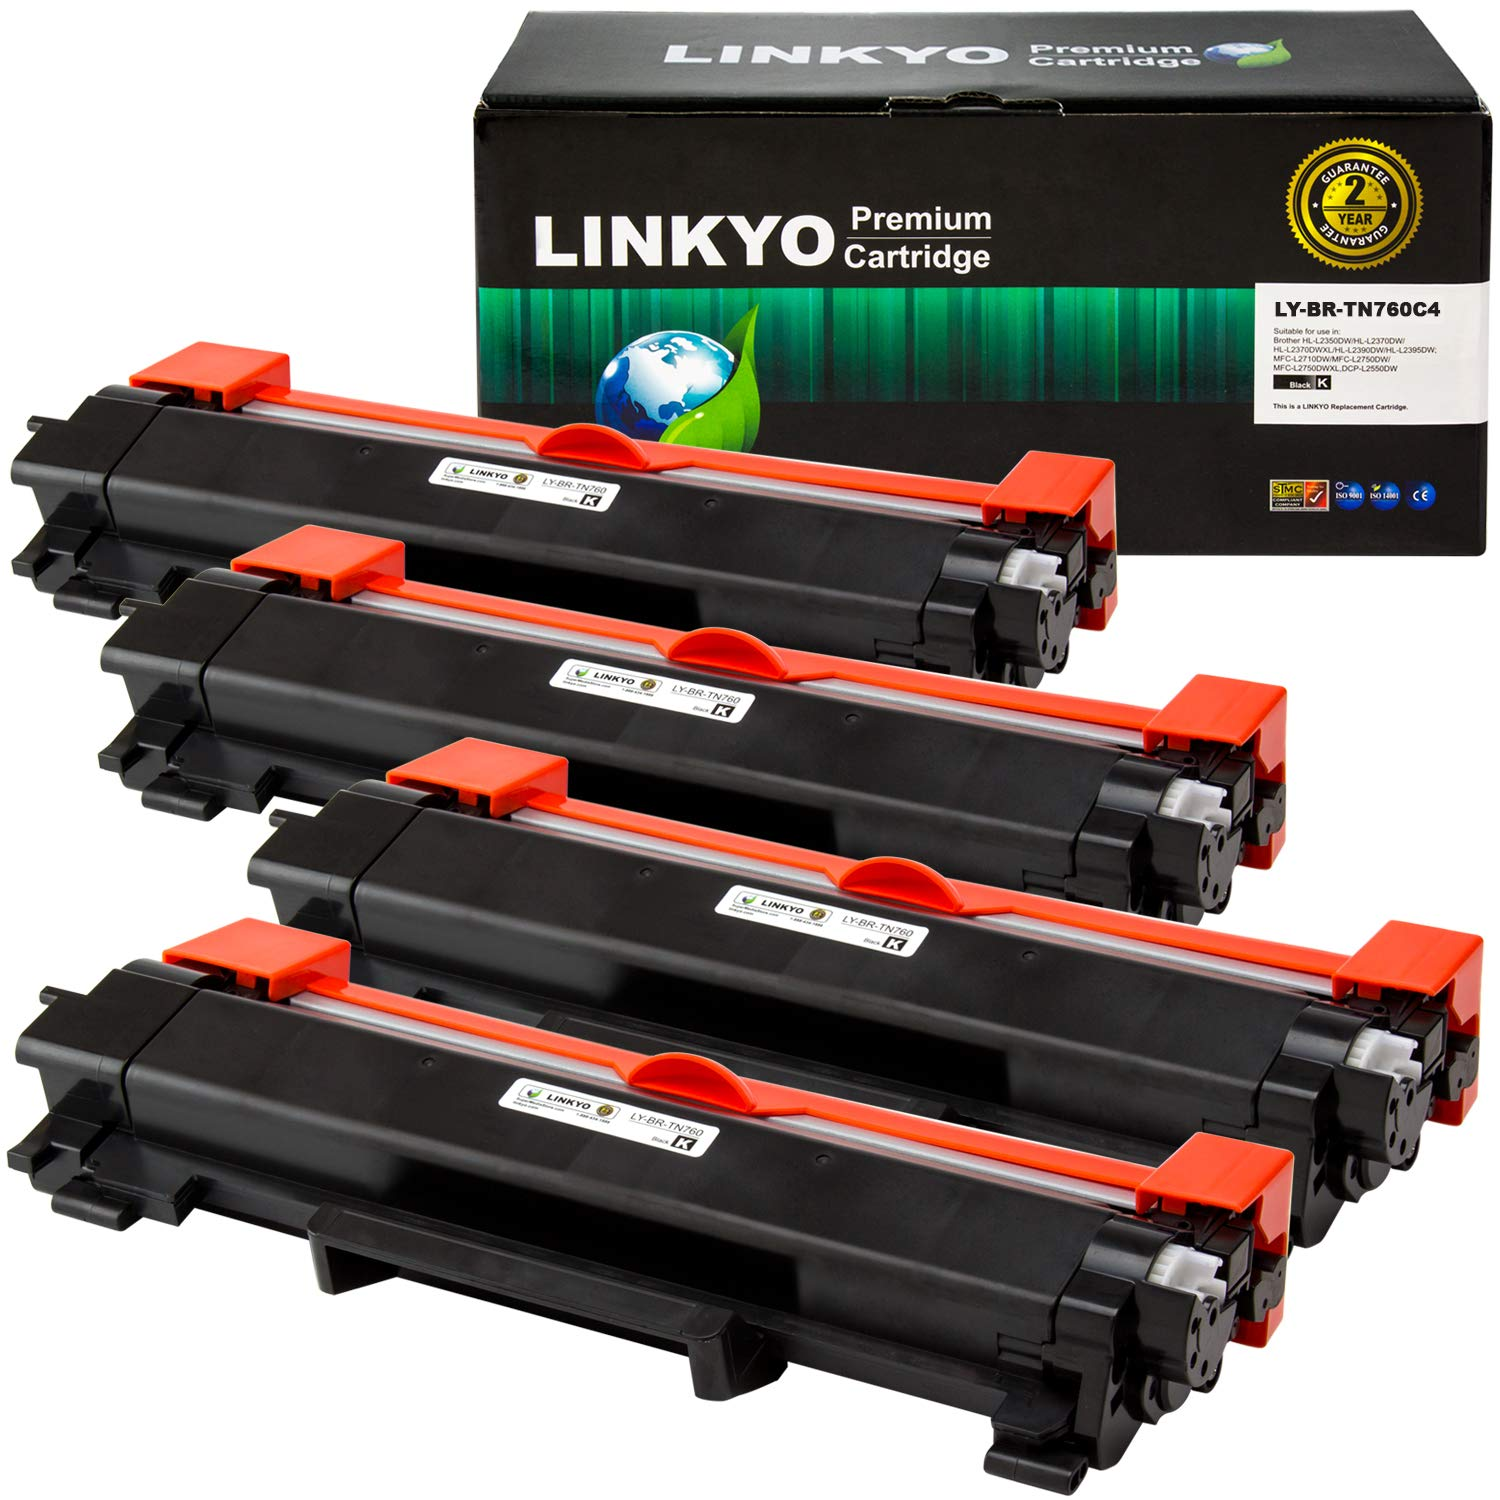 LINKYO Compatible Toner Cartridge Replacement for Brother TN760 TN-760 TN730 (Black, High Yield, 4-Pack)